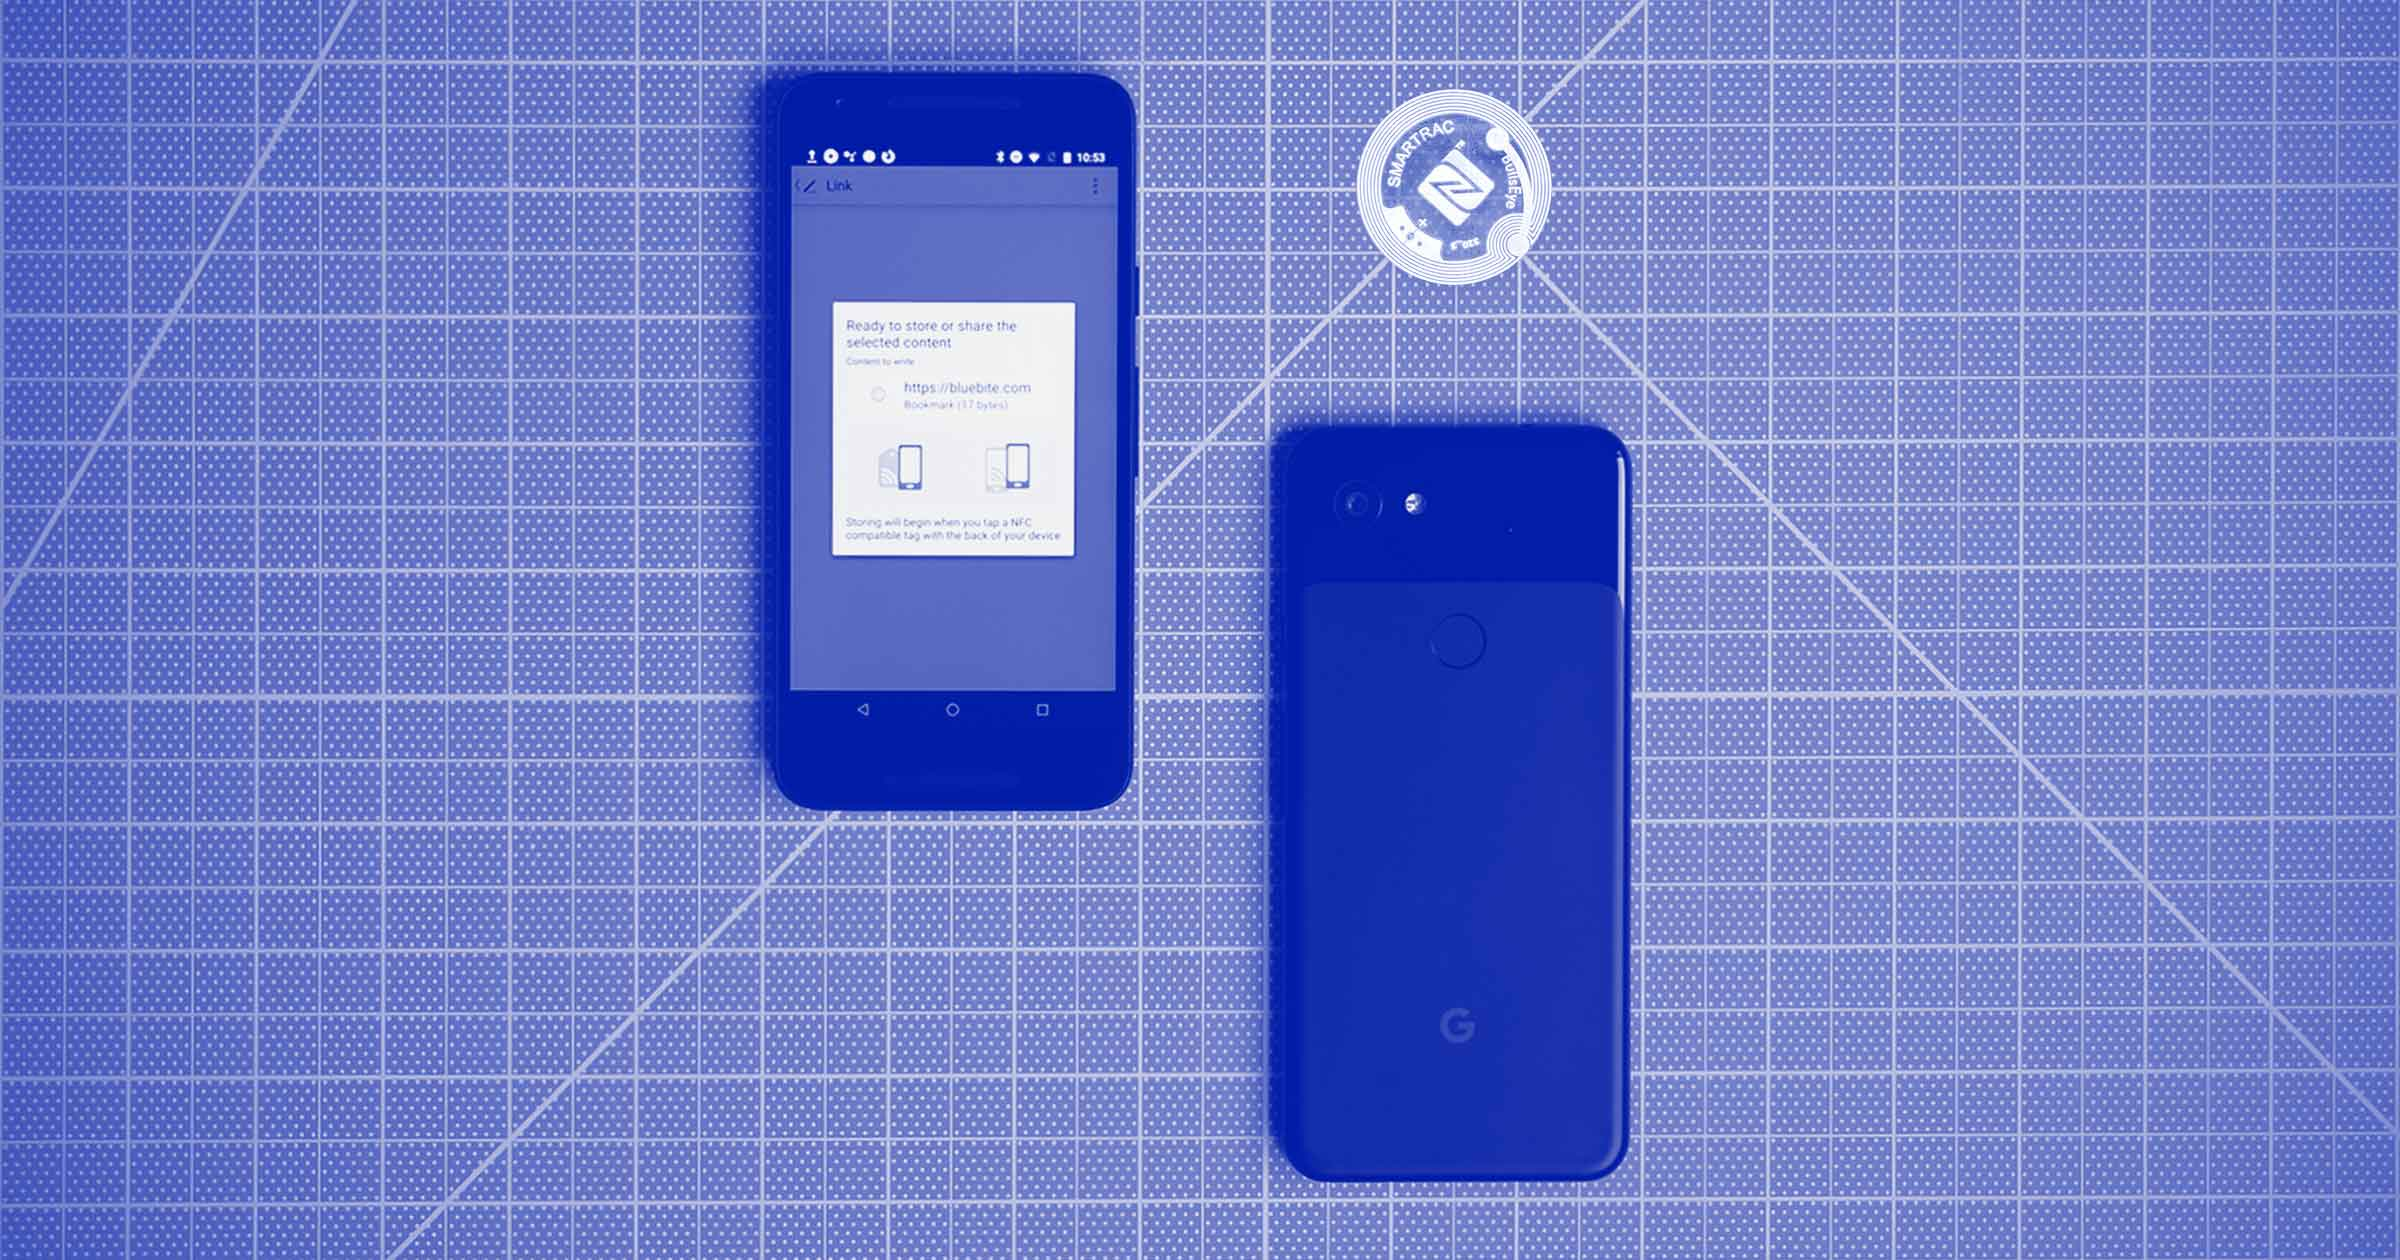 How to Write NFC on Android